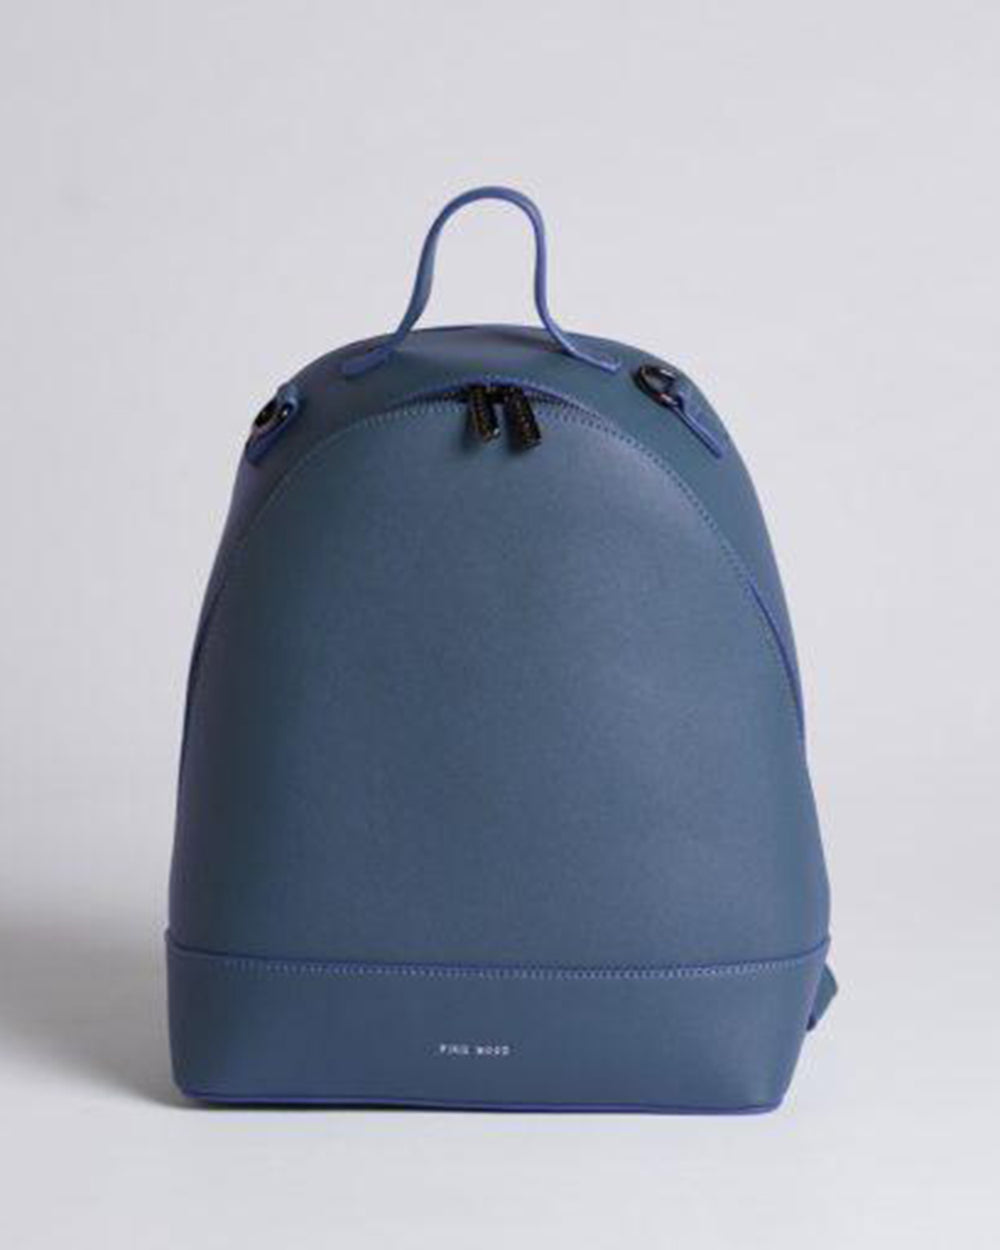 Cora Backpack - Large